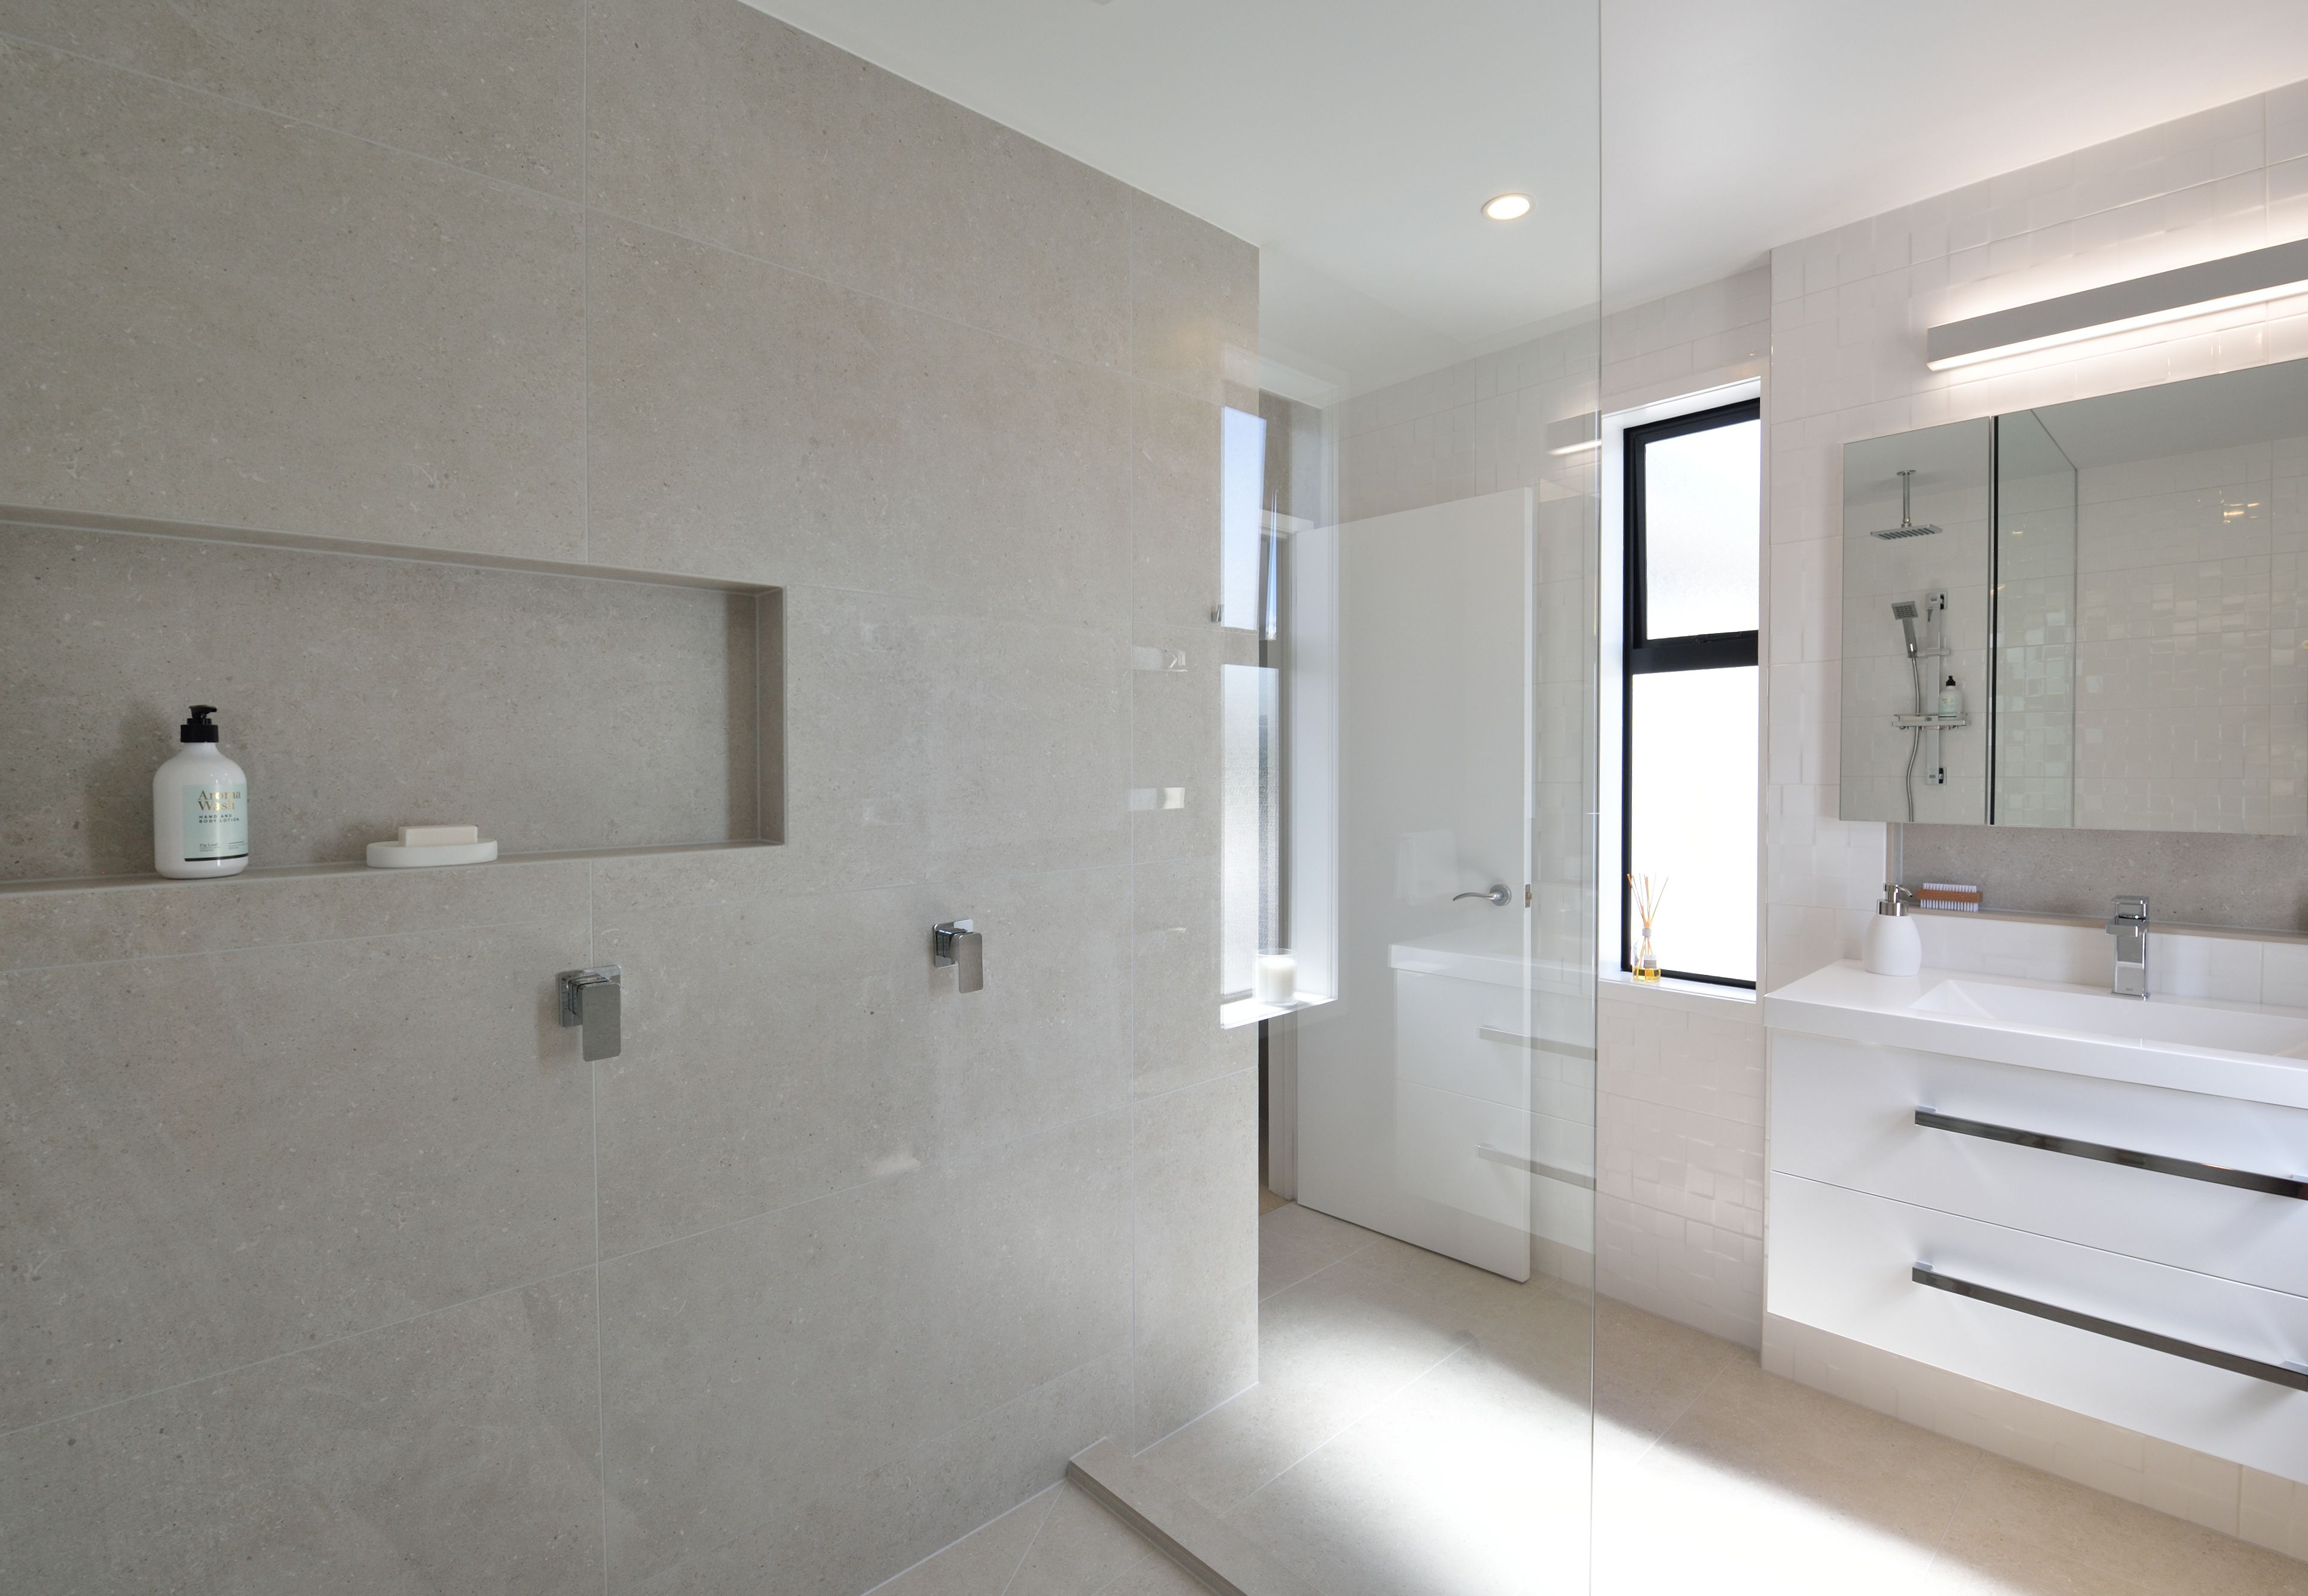 A Bathroom That Oozes Serenity And Sophistication Light Grey Bathrooms Bathrooms Direct Bathroom Design